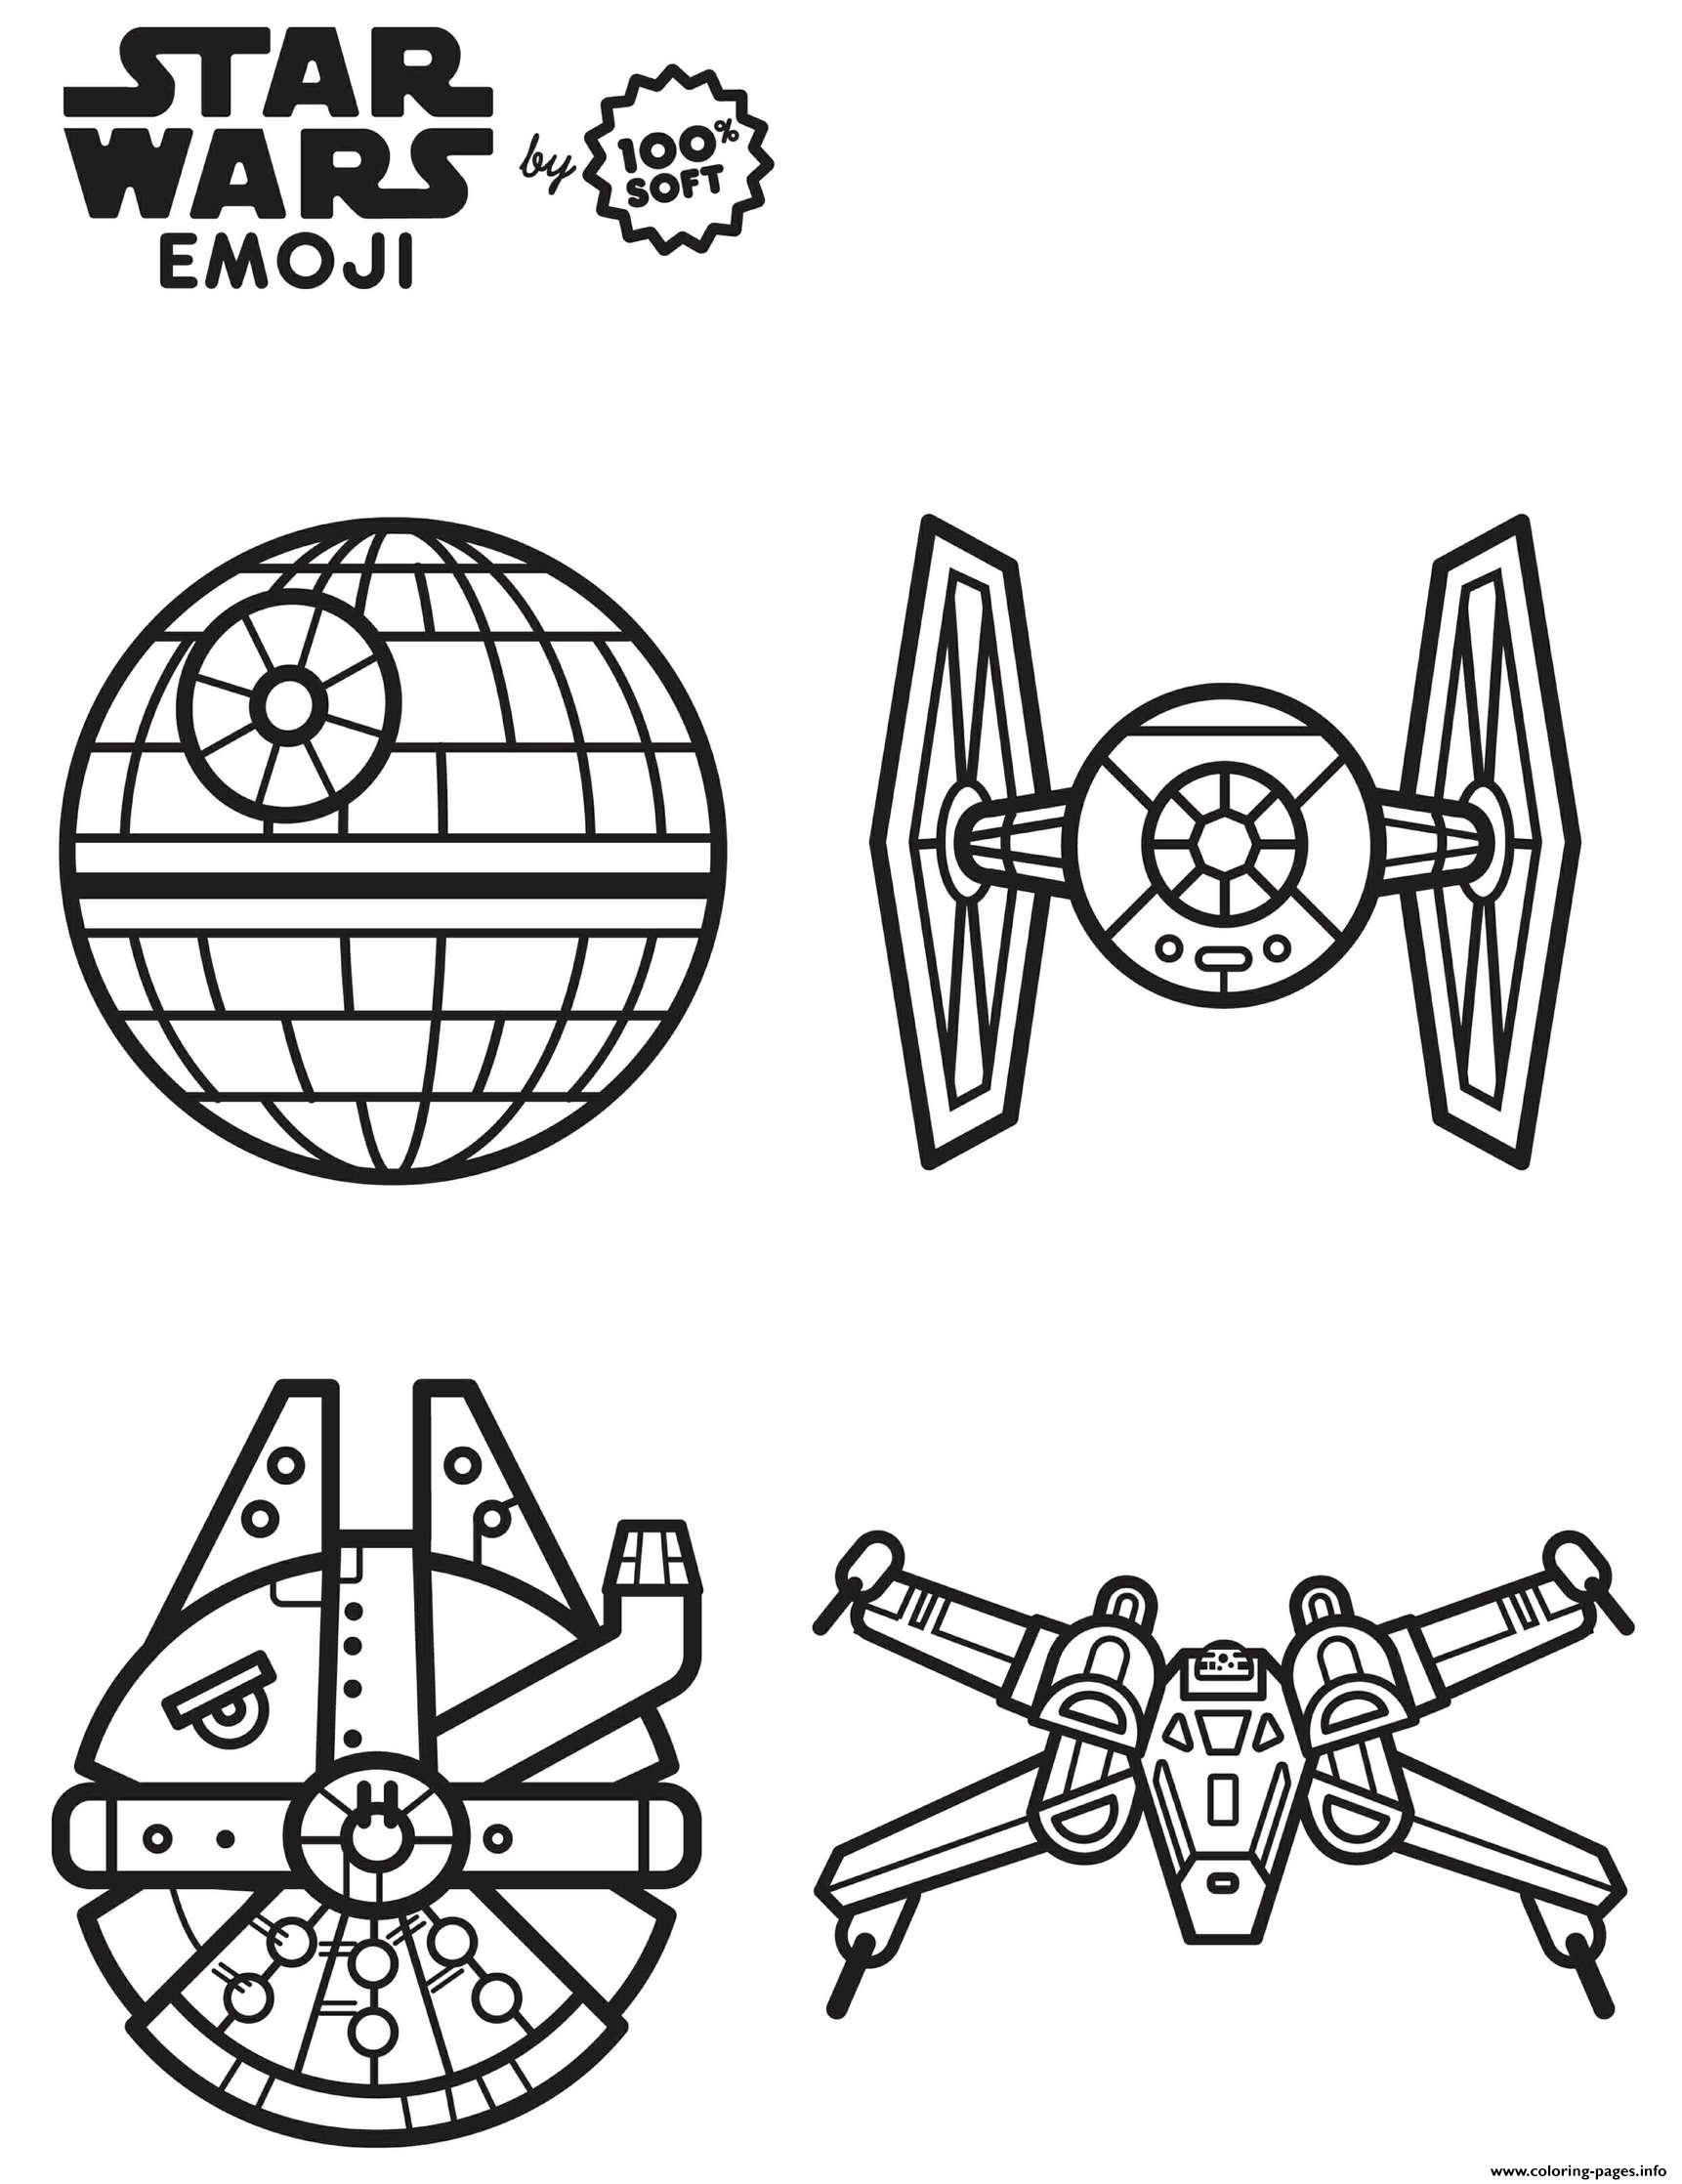 Star Wars Vaisseaux Emoji coloring pages